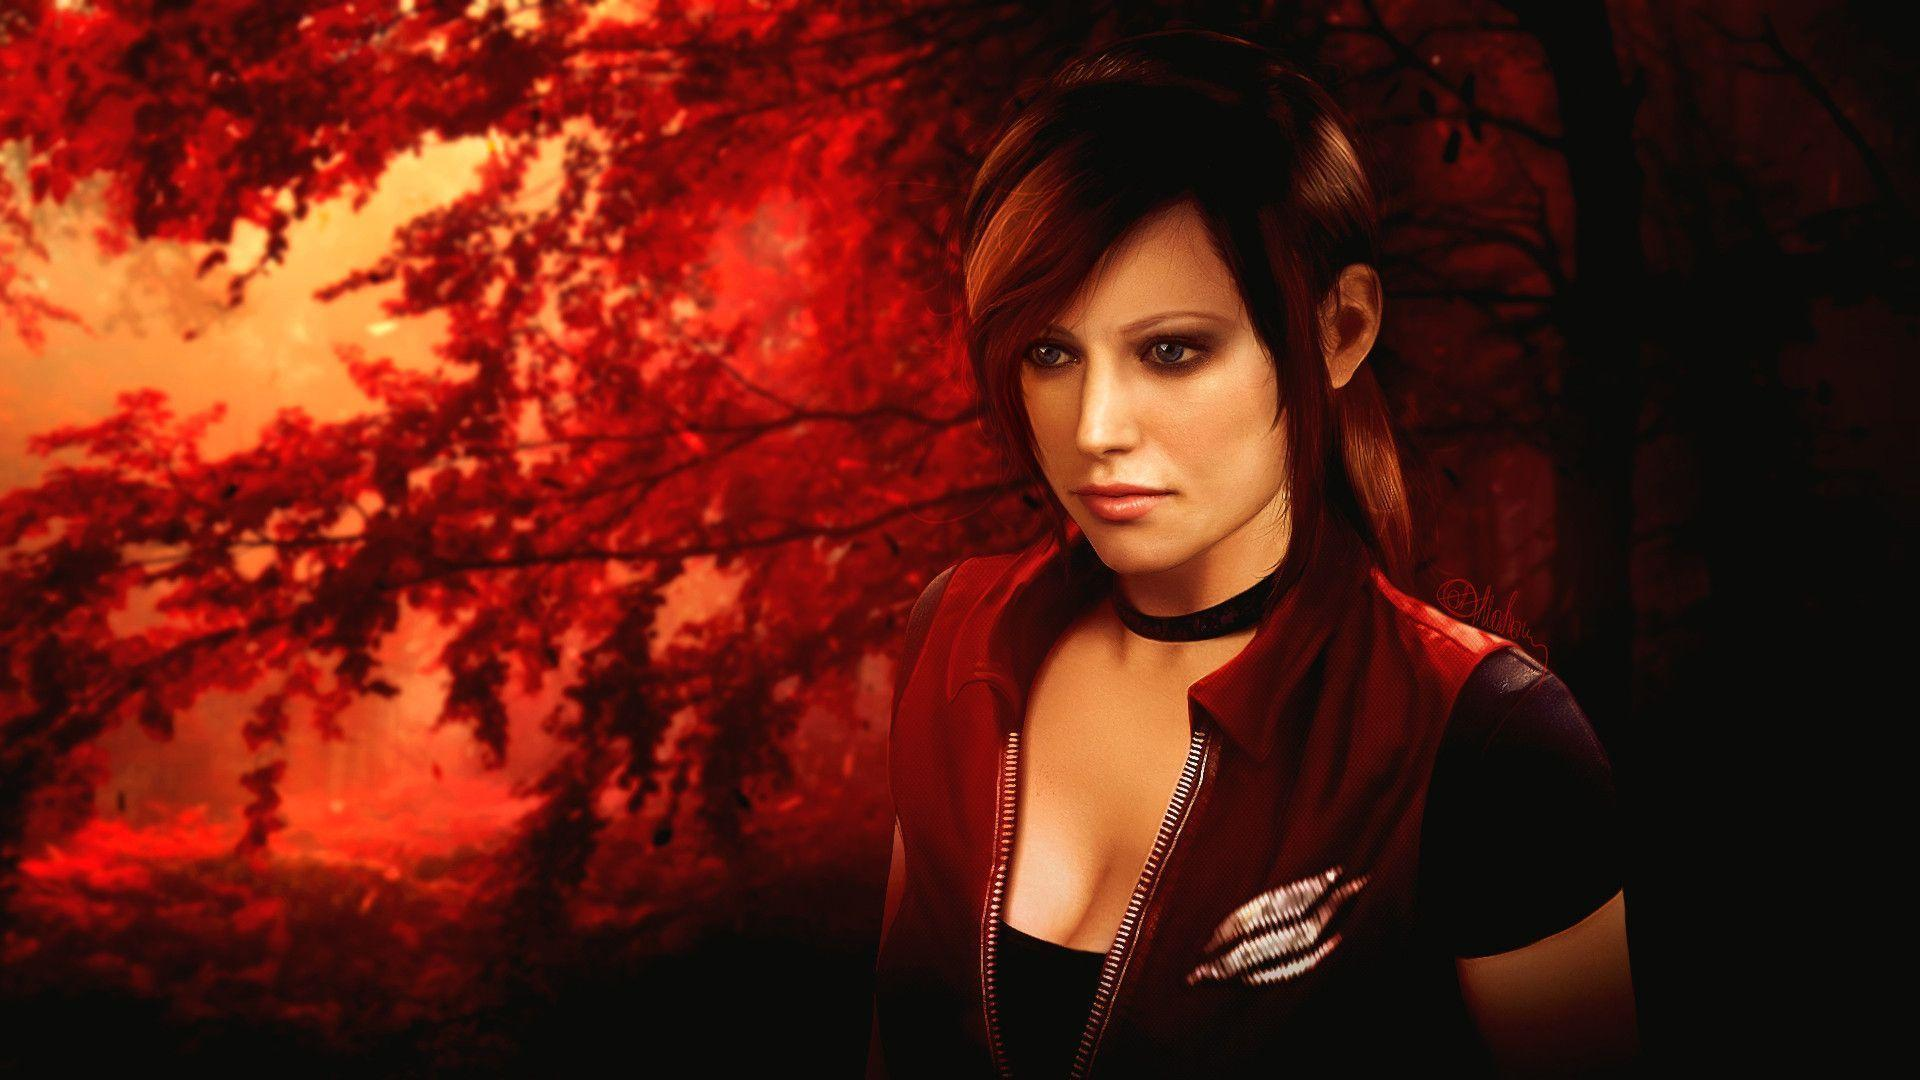 Leon S Kennedy Hd Wallpaper Claire Redfield Wallpapers Wallpaper Cave